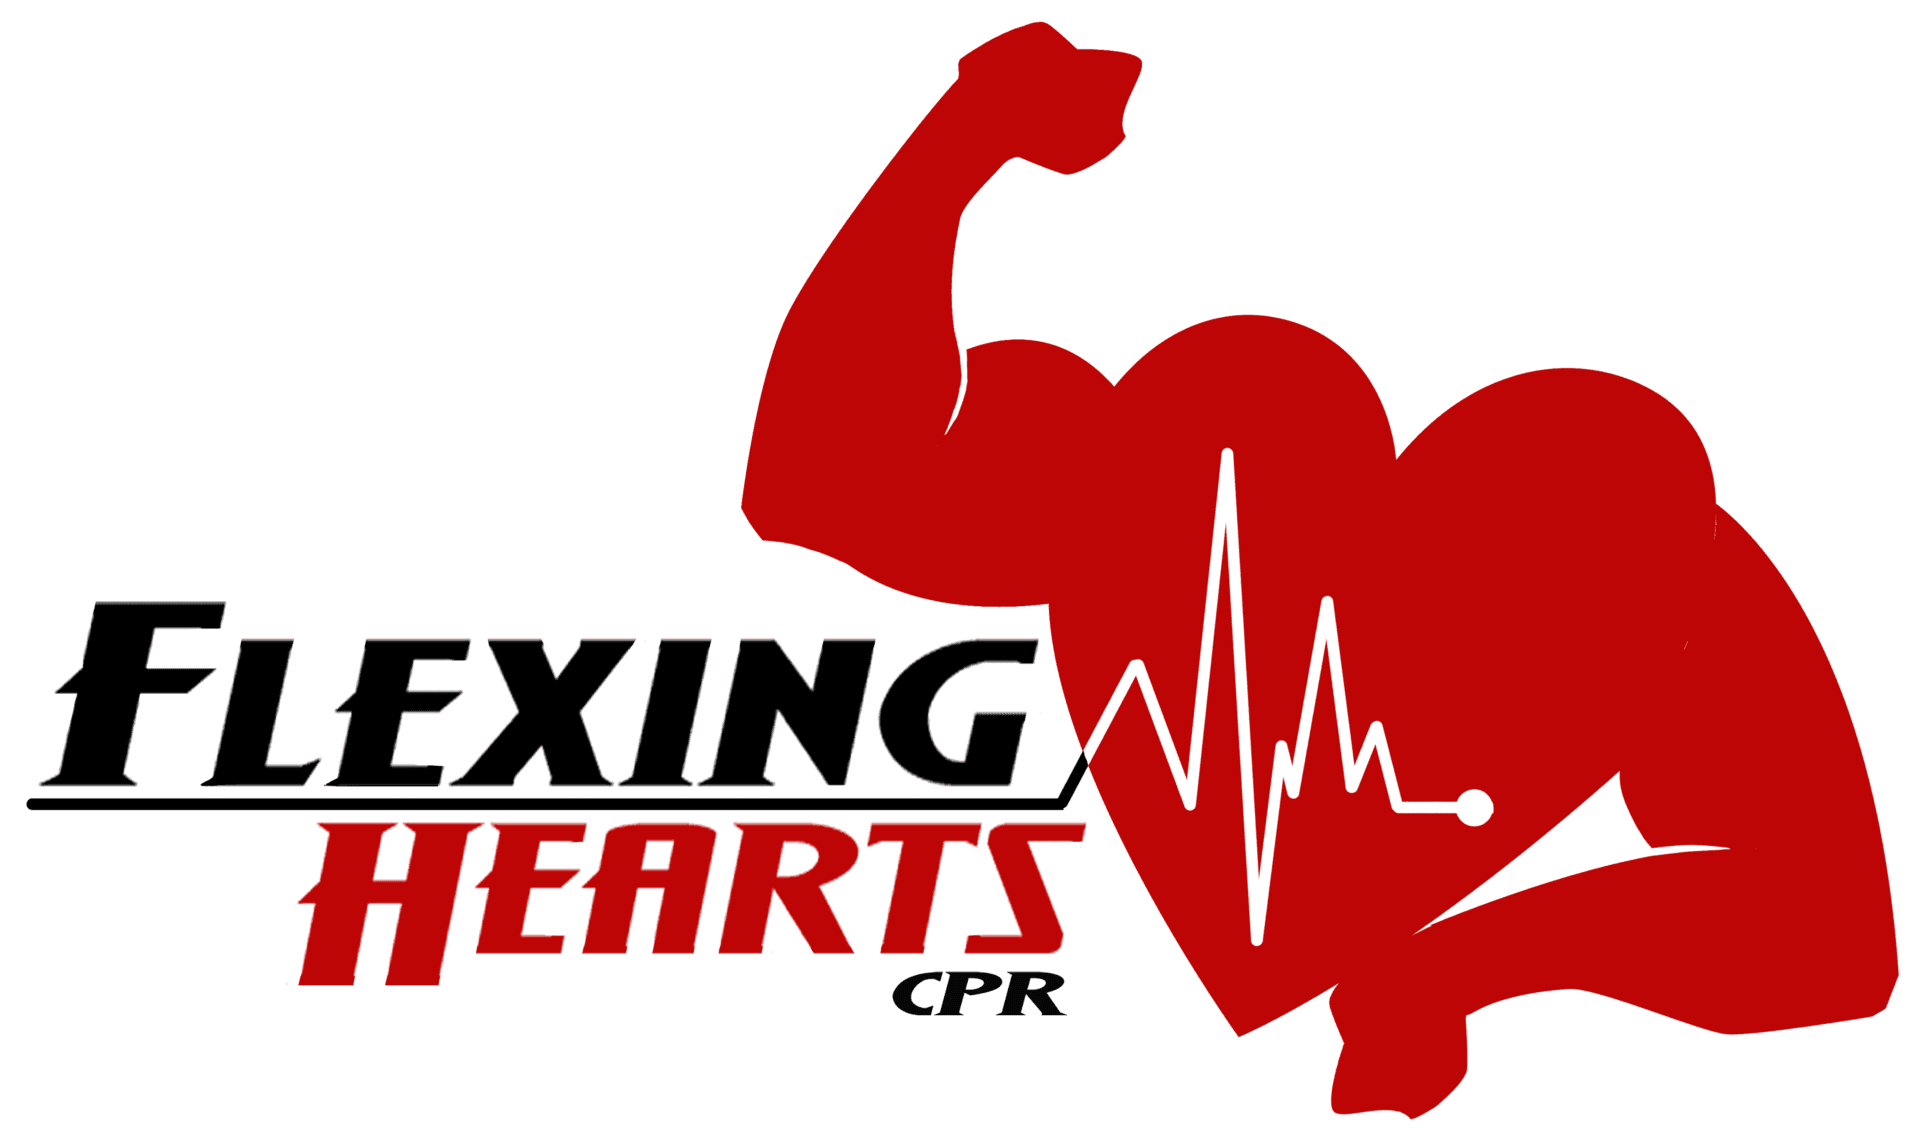 Flexing Hearts Cpr Courses Offered